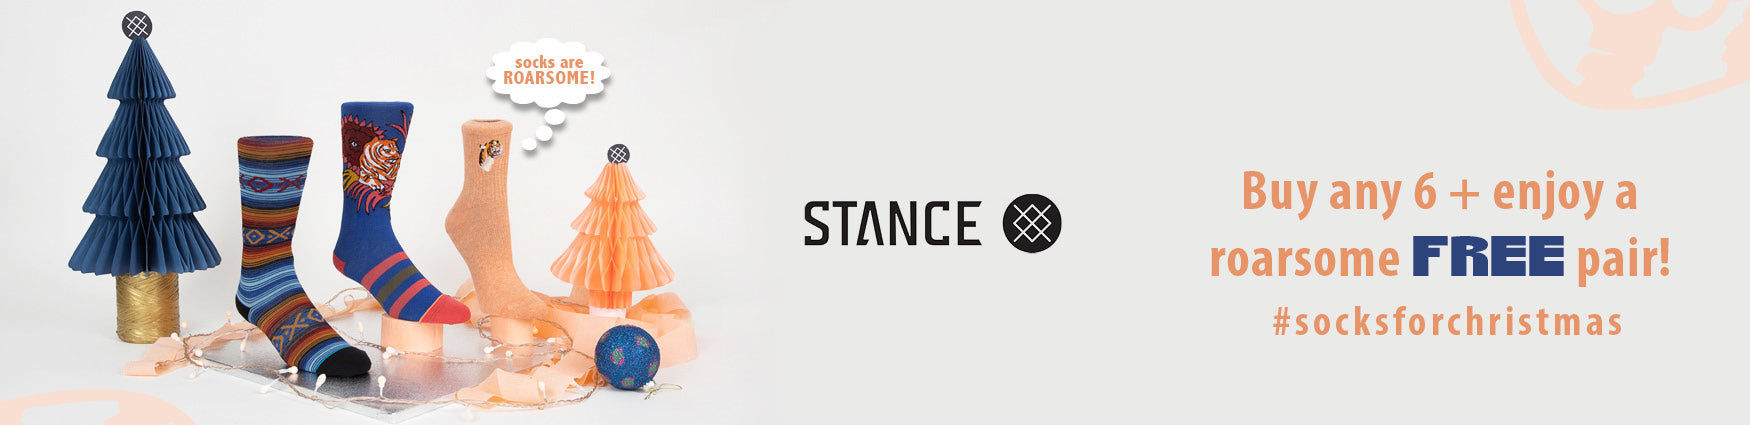 Stance Socks For Christmas | Buy 6 pairs & receive a pair free